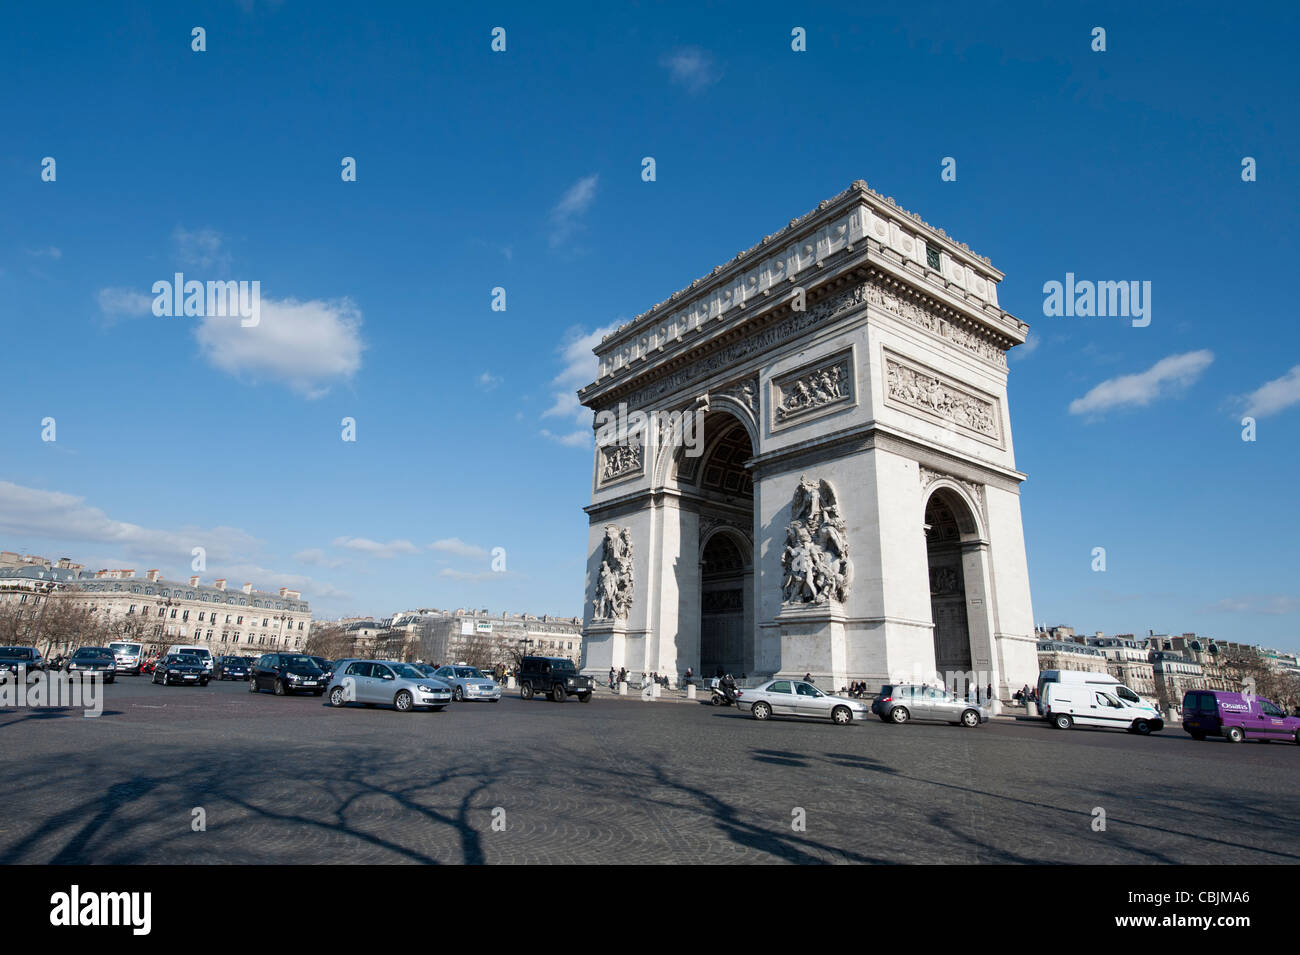 The Arc de Triomphe from the encompassing roundabout during the day time daytime featuring. - Stock Image